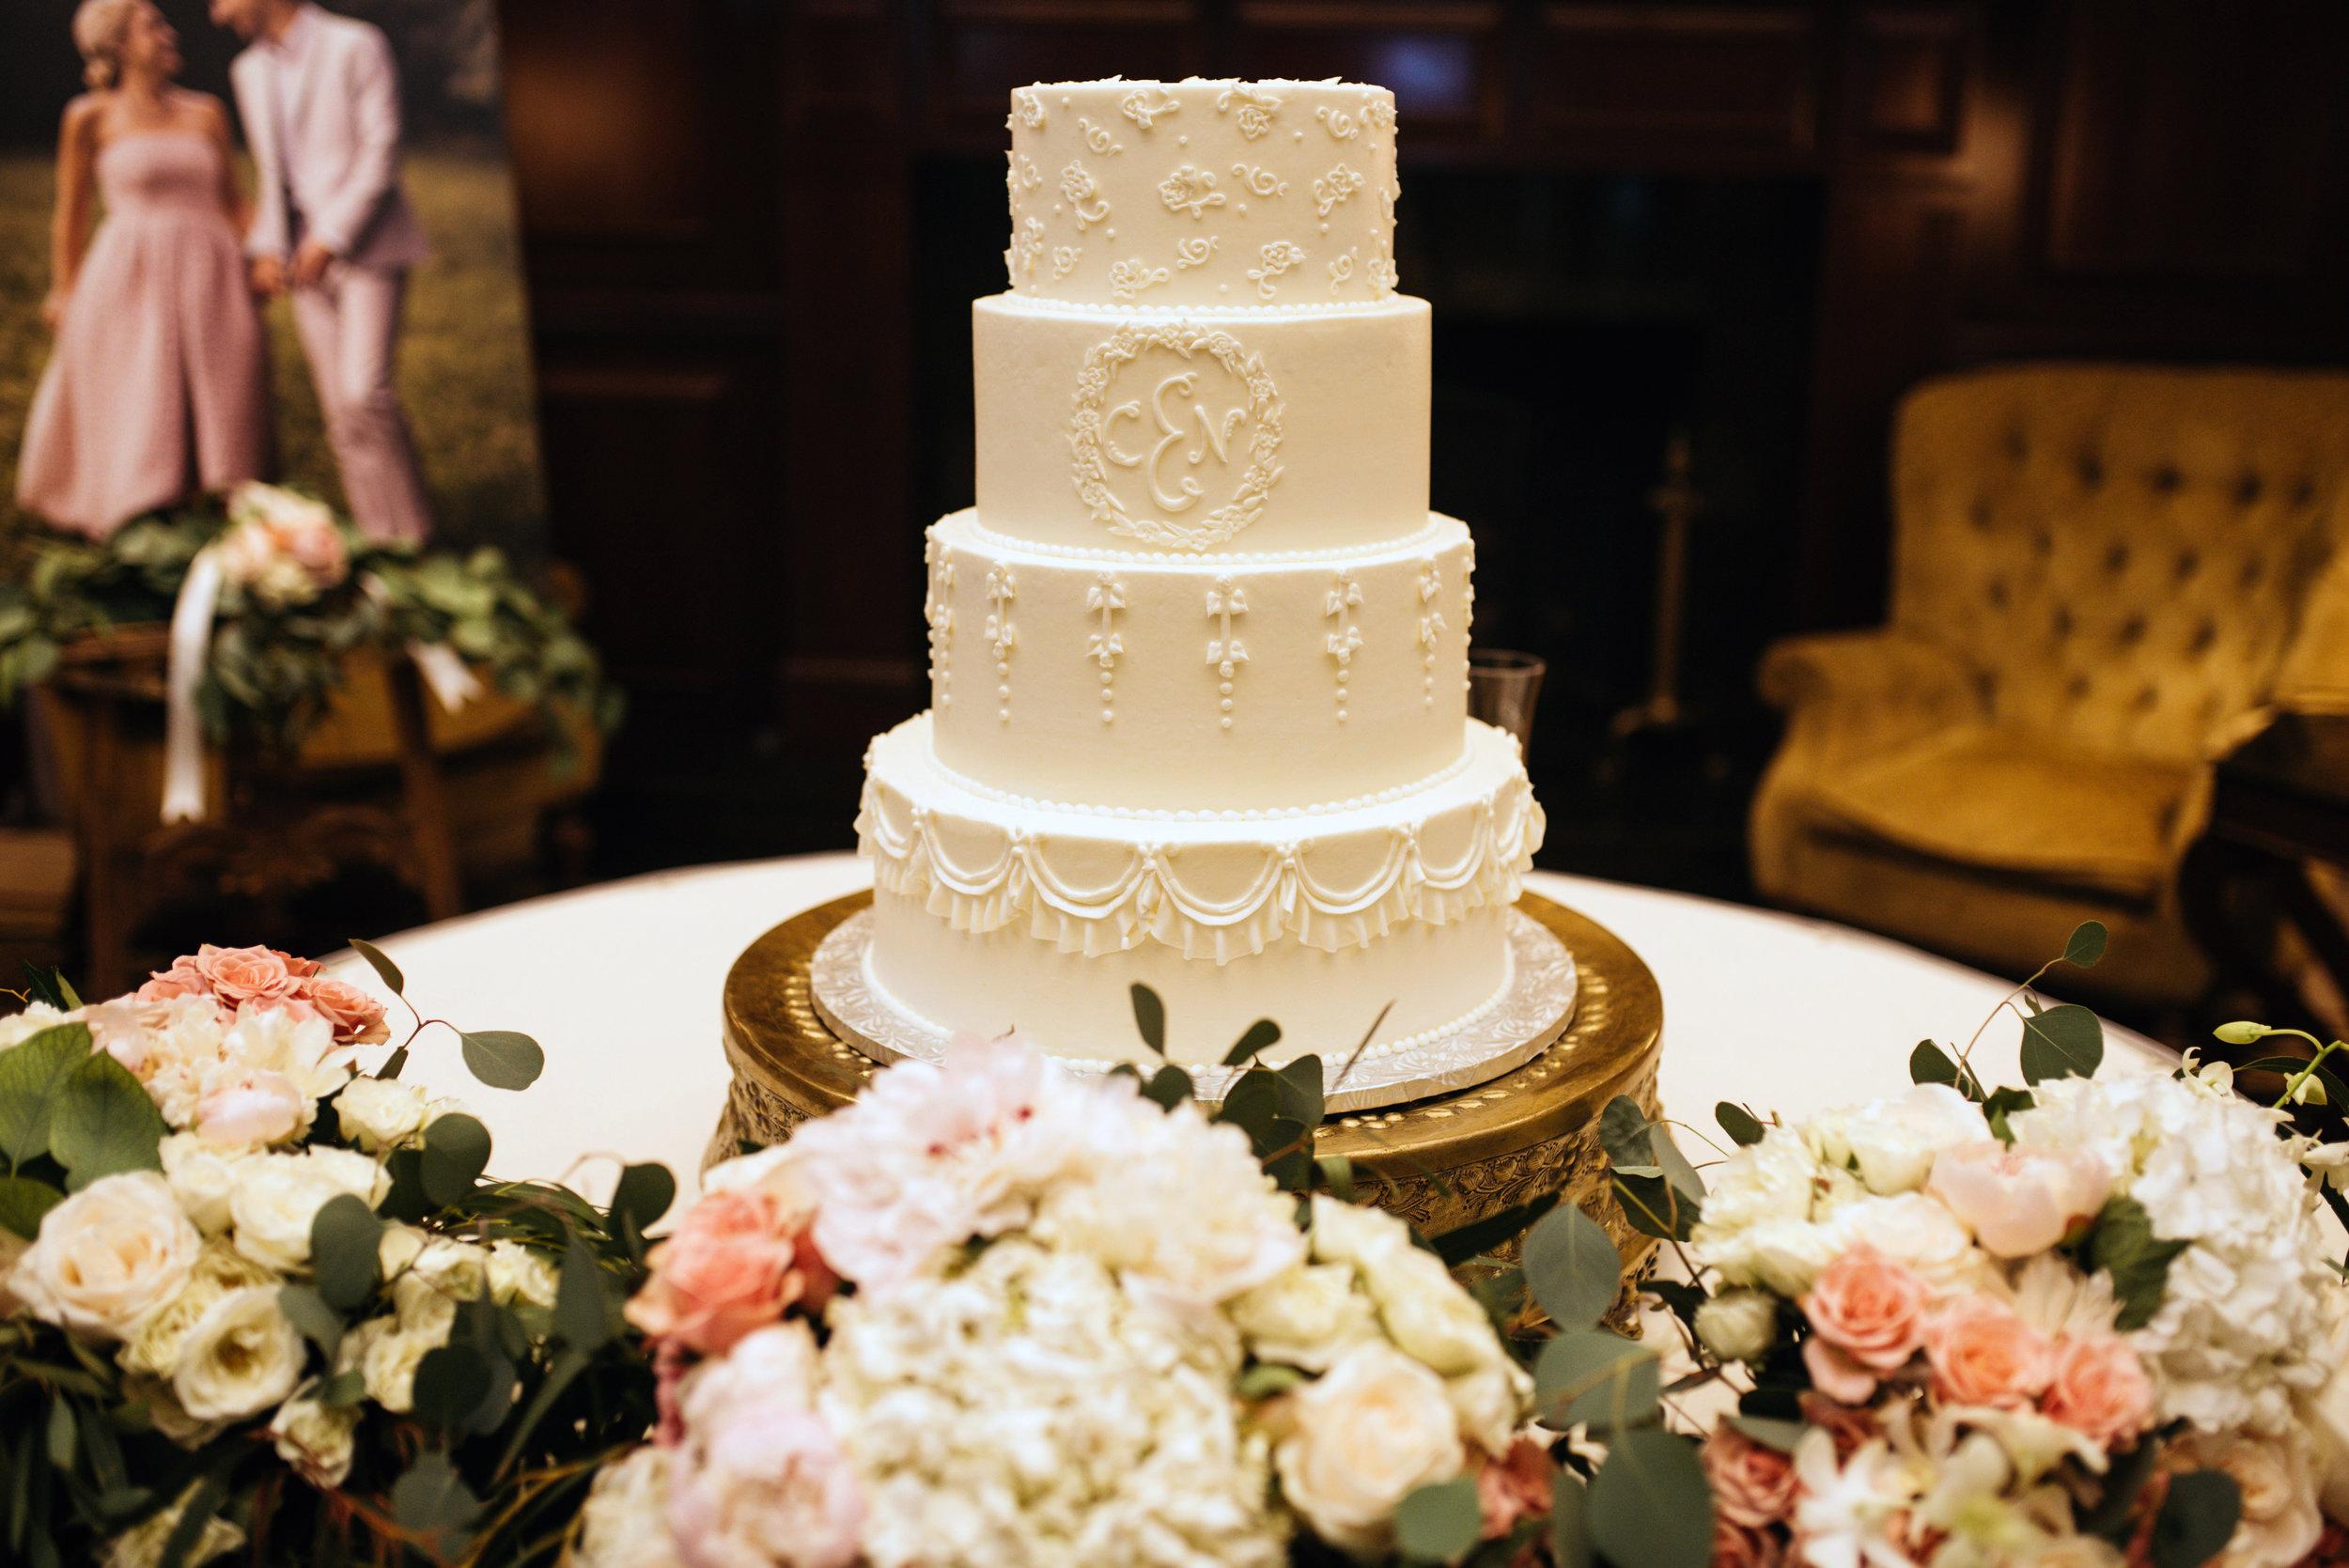 white detailed cake with flowers.jpg